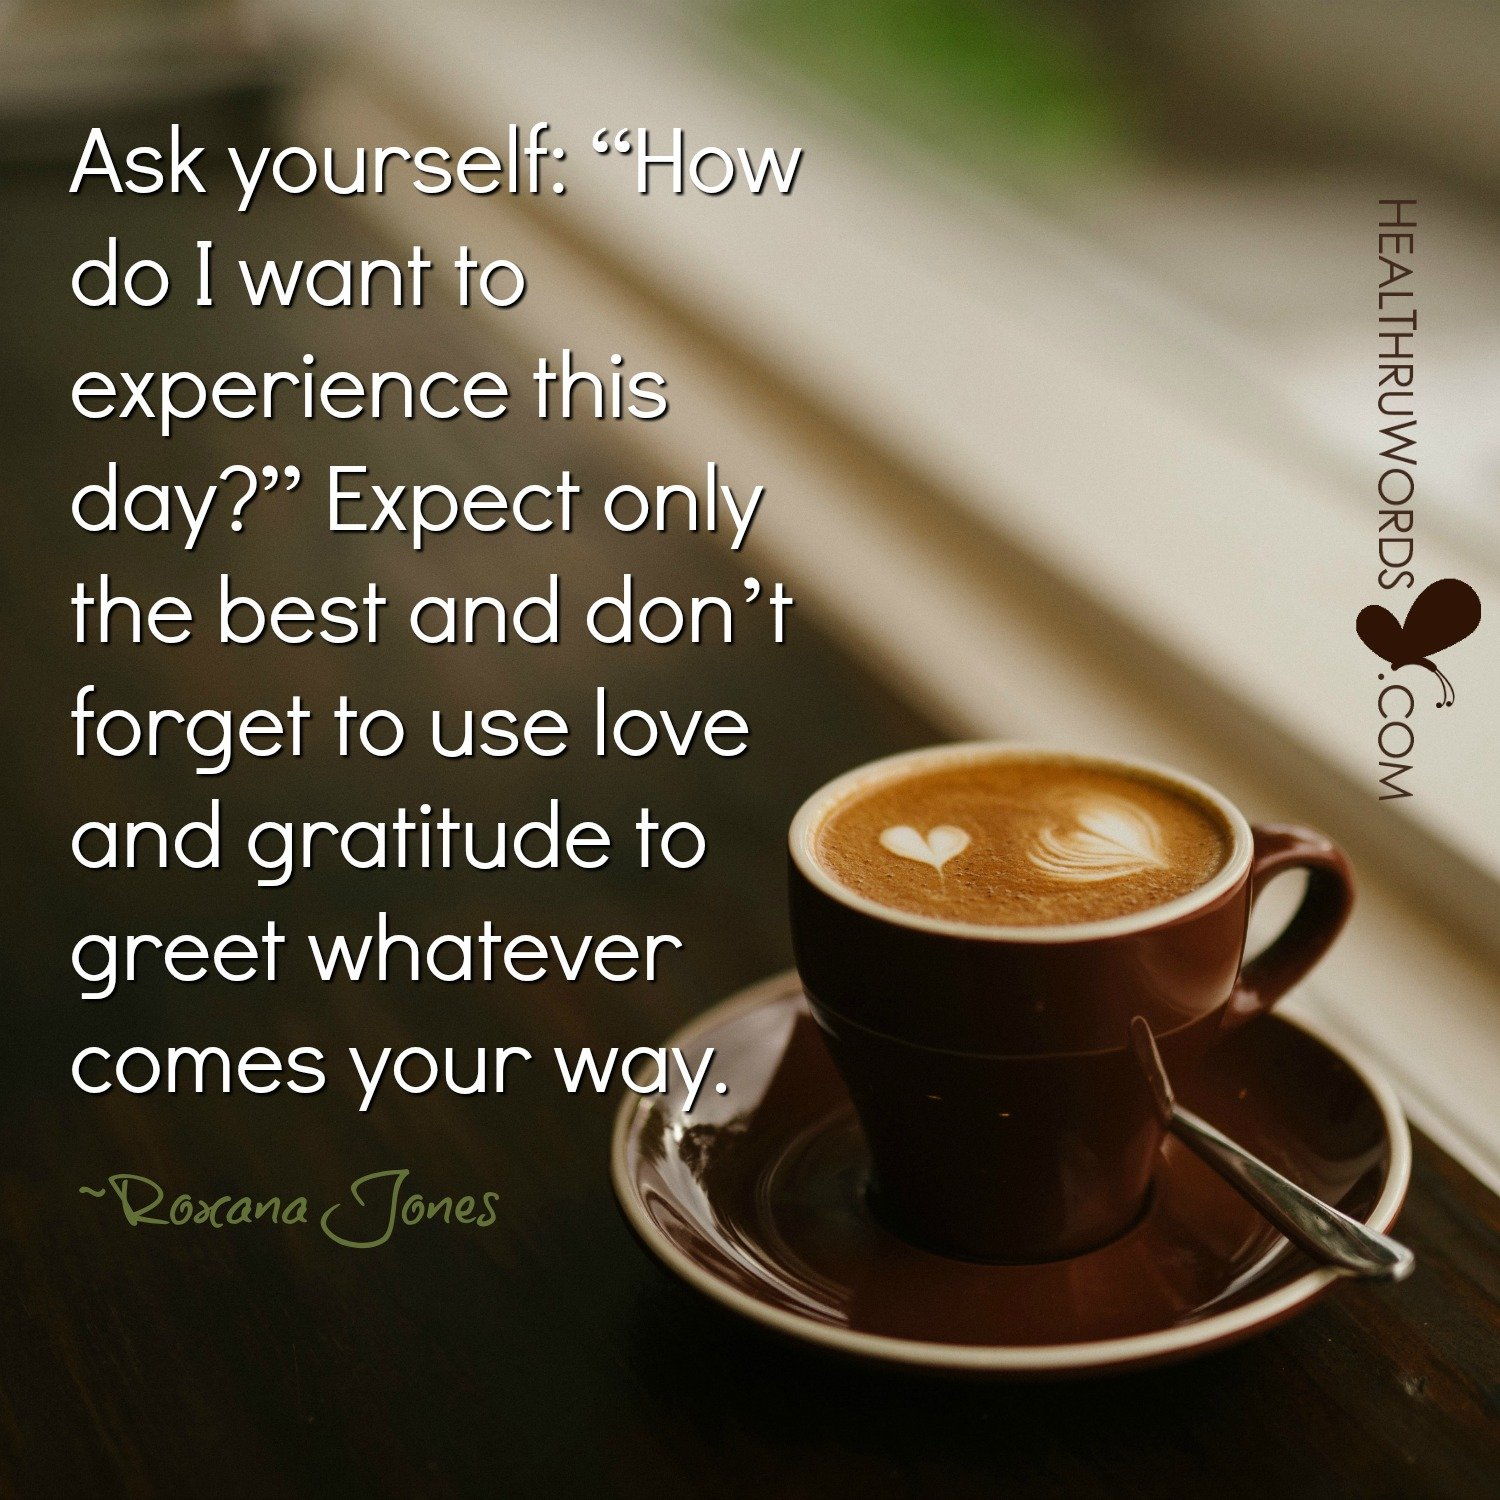 Inspirational Image: Creating your Day